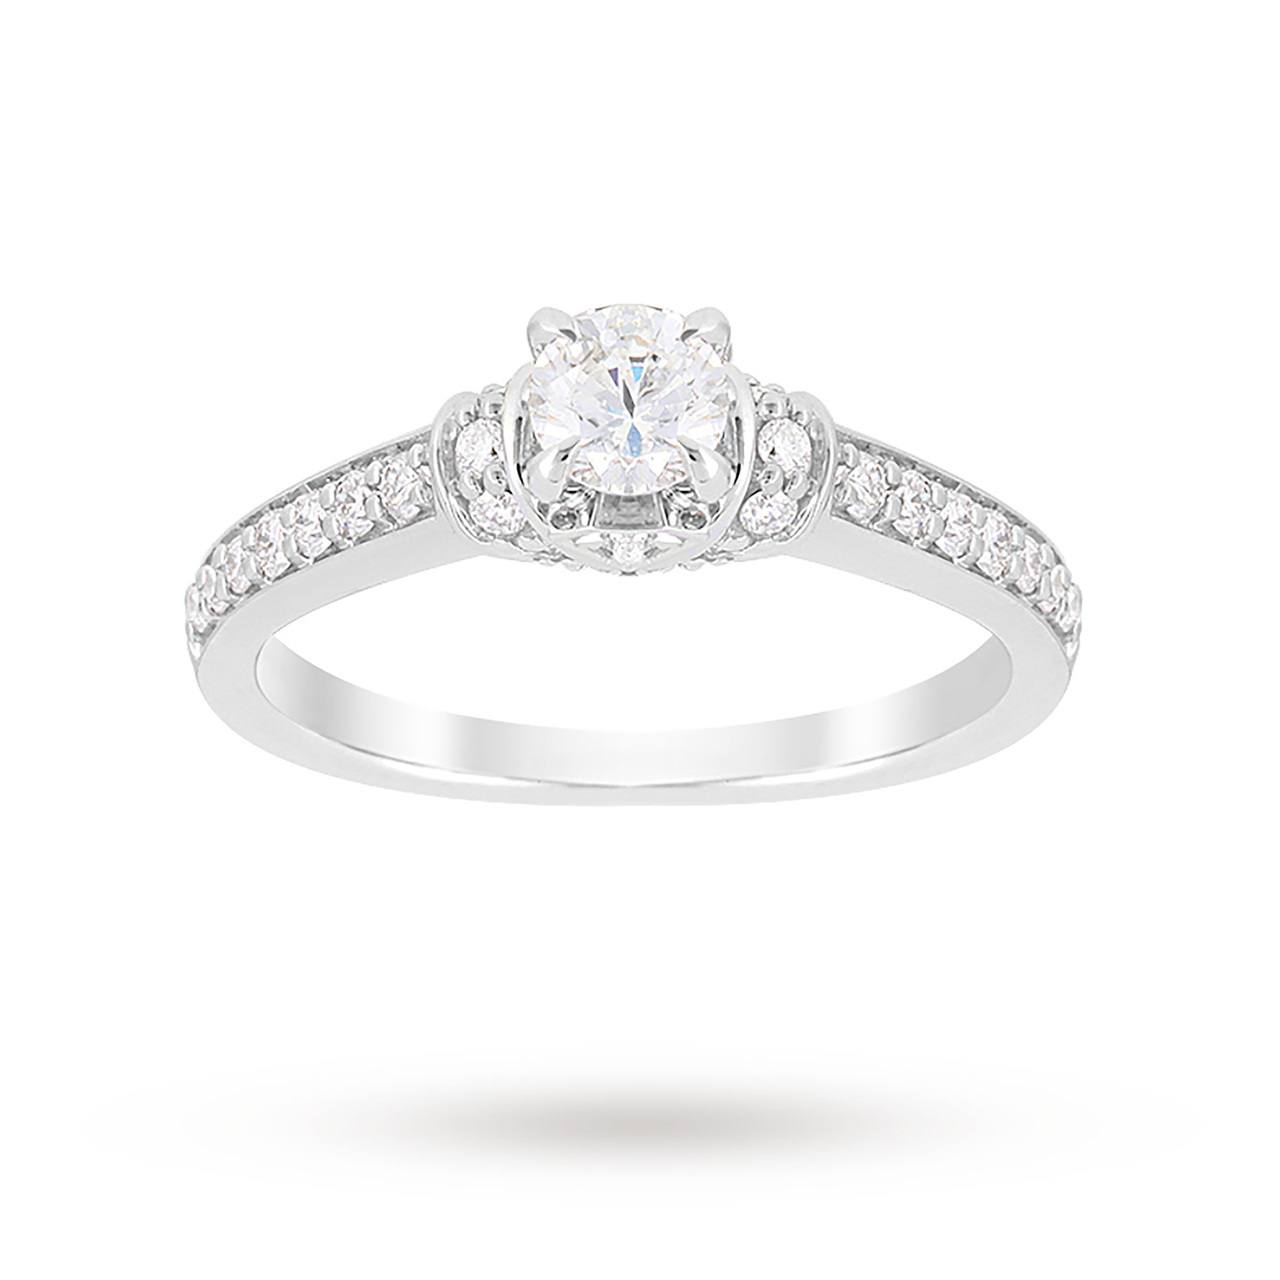 Jenny Packham Brilliant Cut 0.85 Carat Total Weight Diamond Art Deco Style Ring in Platinum